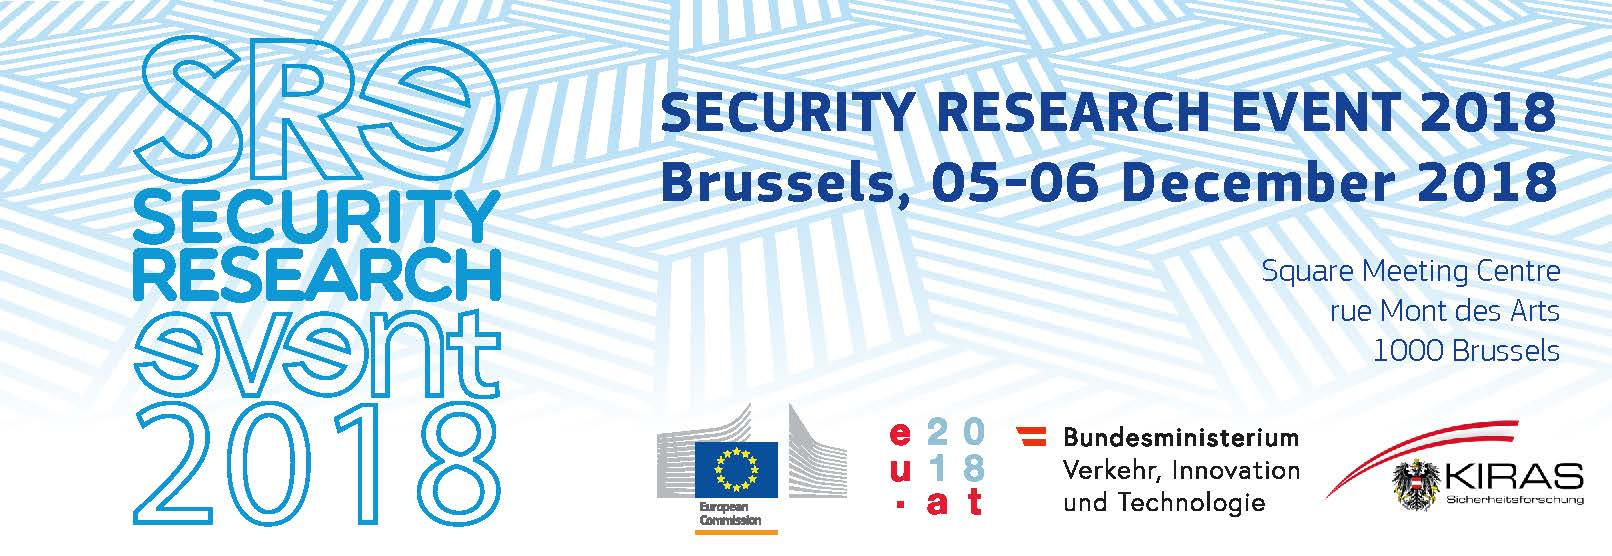 SECURITY RESEARCH EVENT 2018